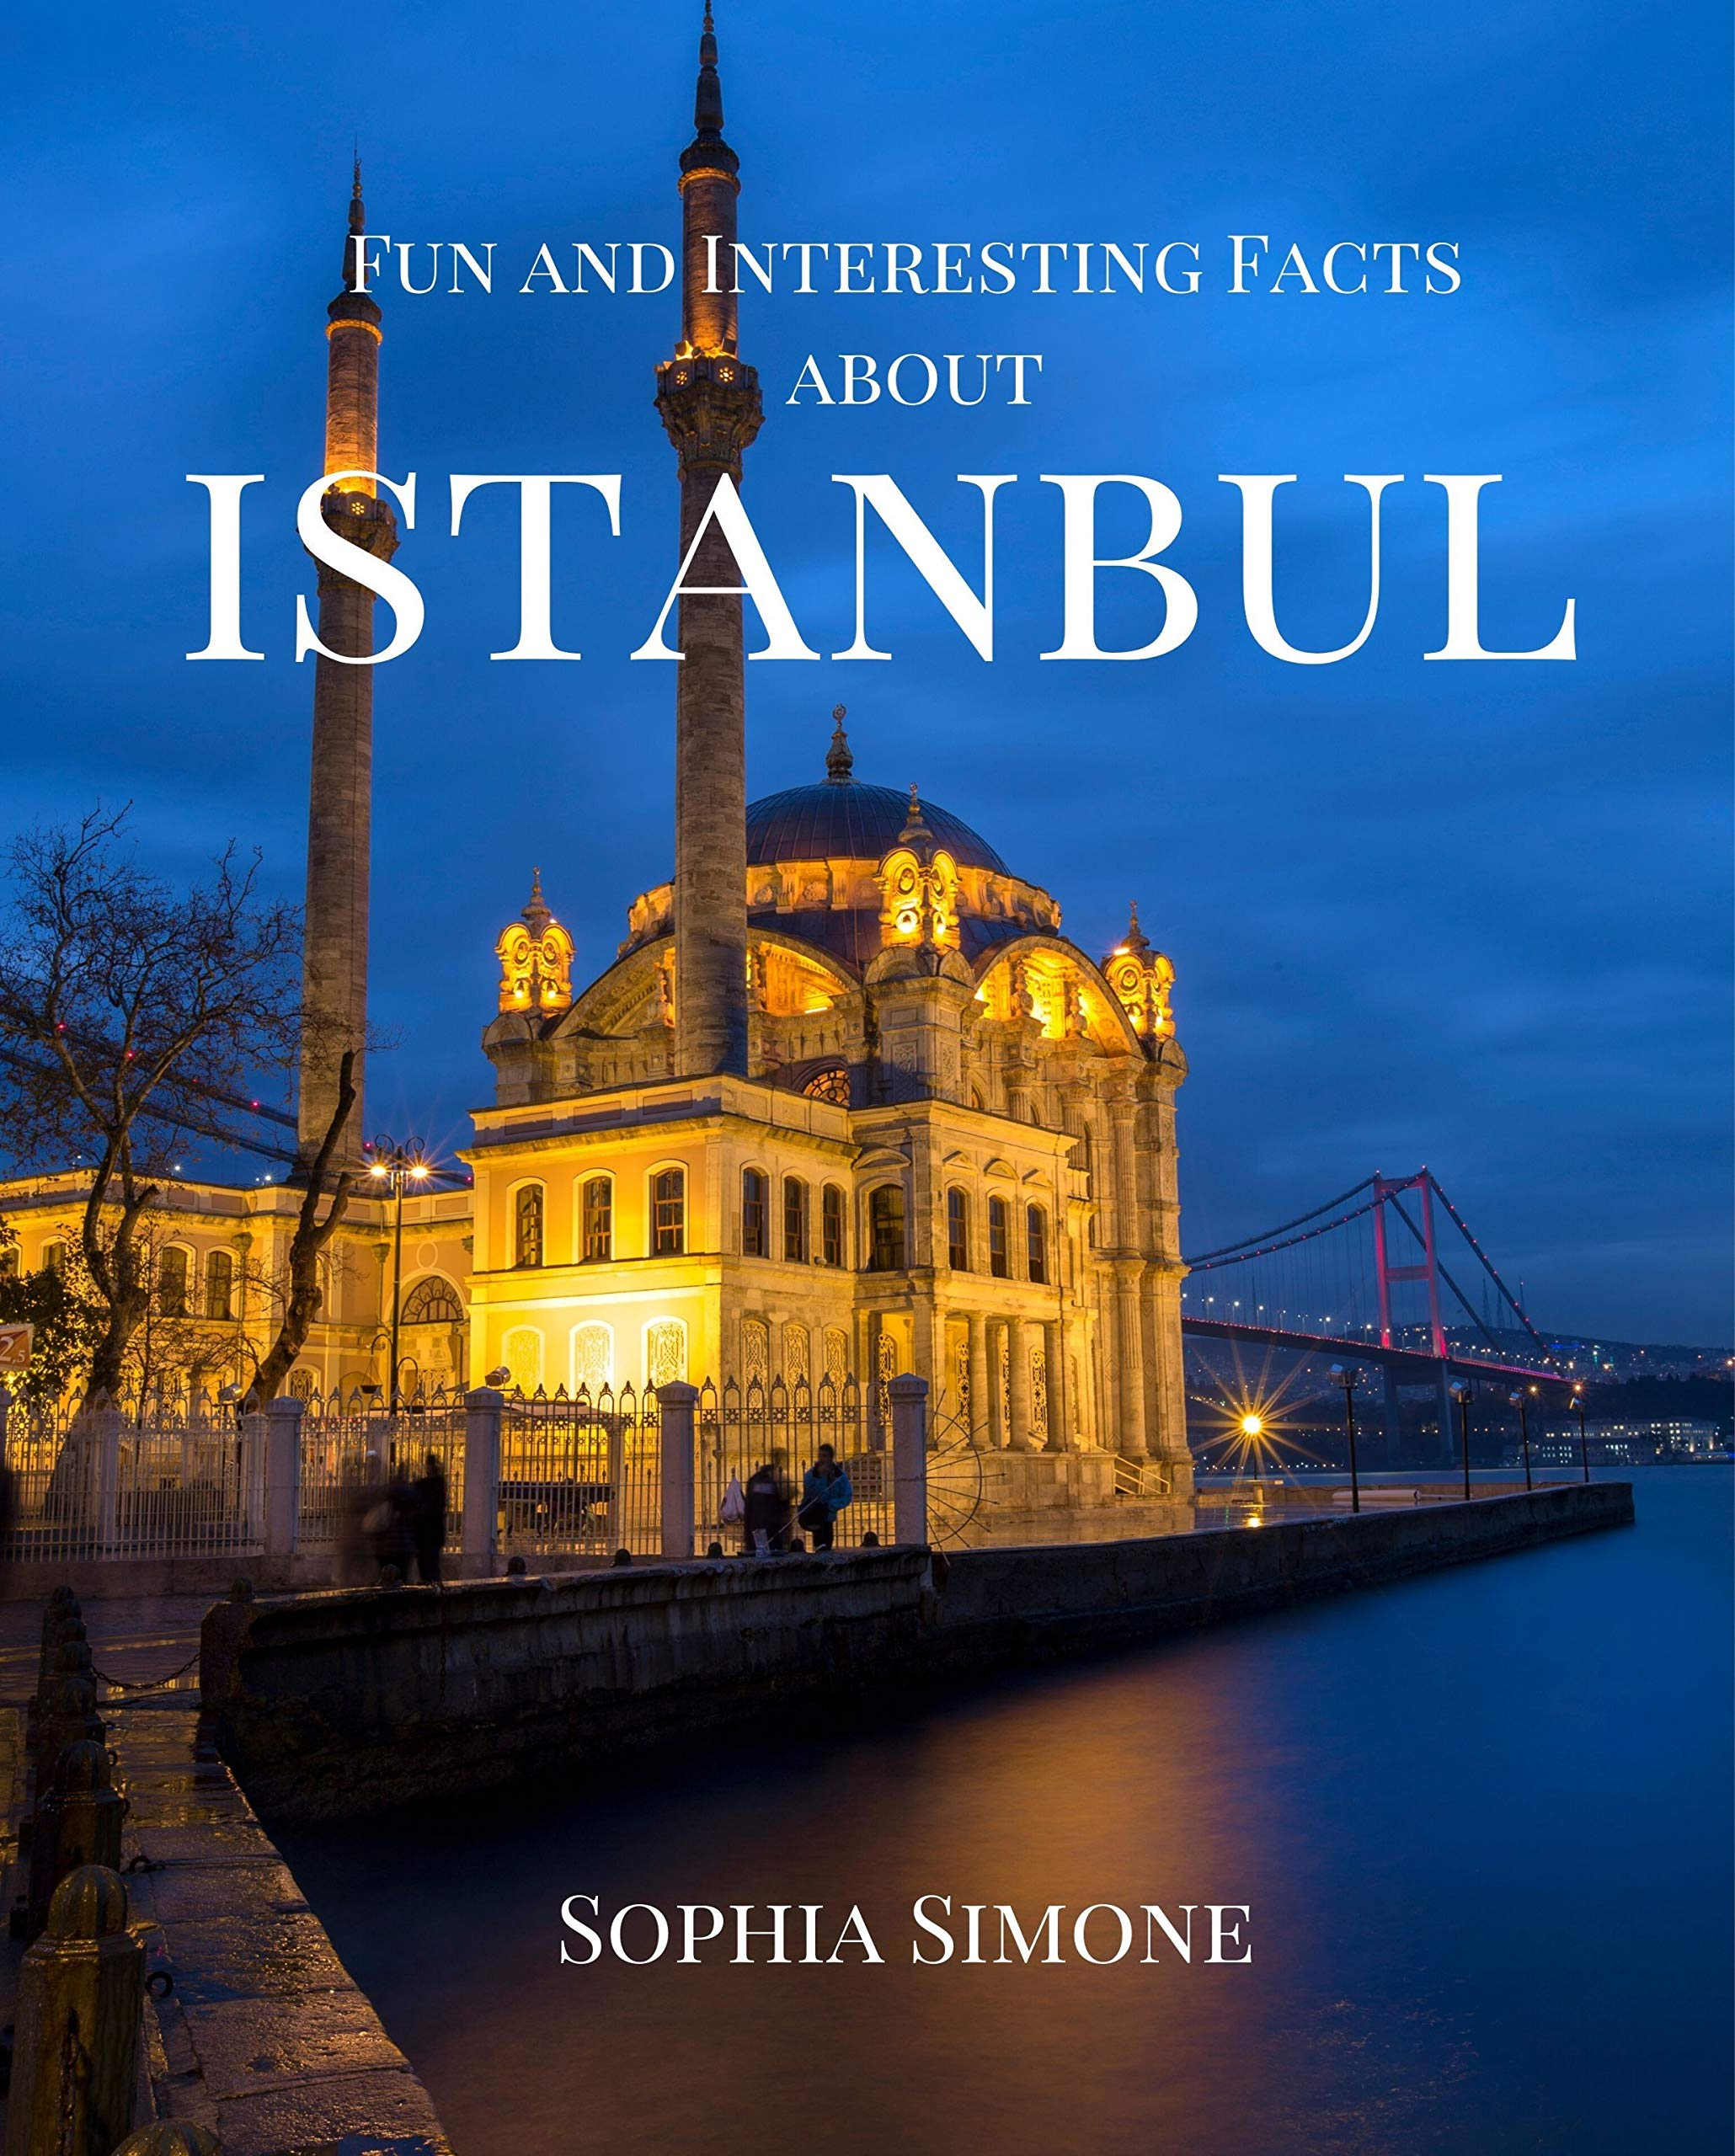 Fun and Interesting Facts about Istanbul: A Captivating Picture Photography Coffee Table Photobook Travel Tour Guide Book with Brief History, Culture, and Information about the city in Turkey